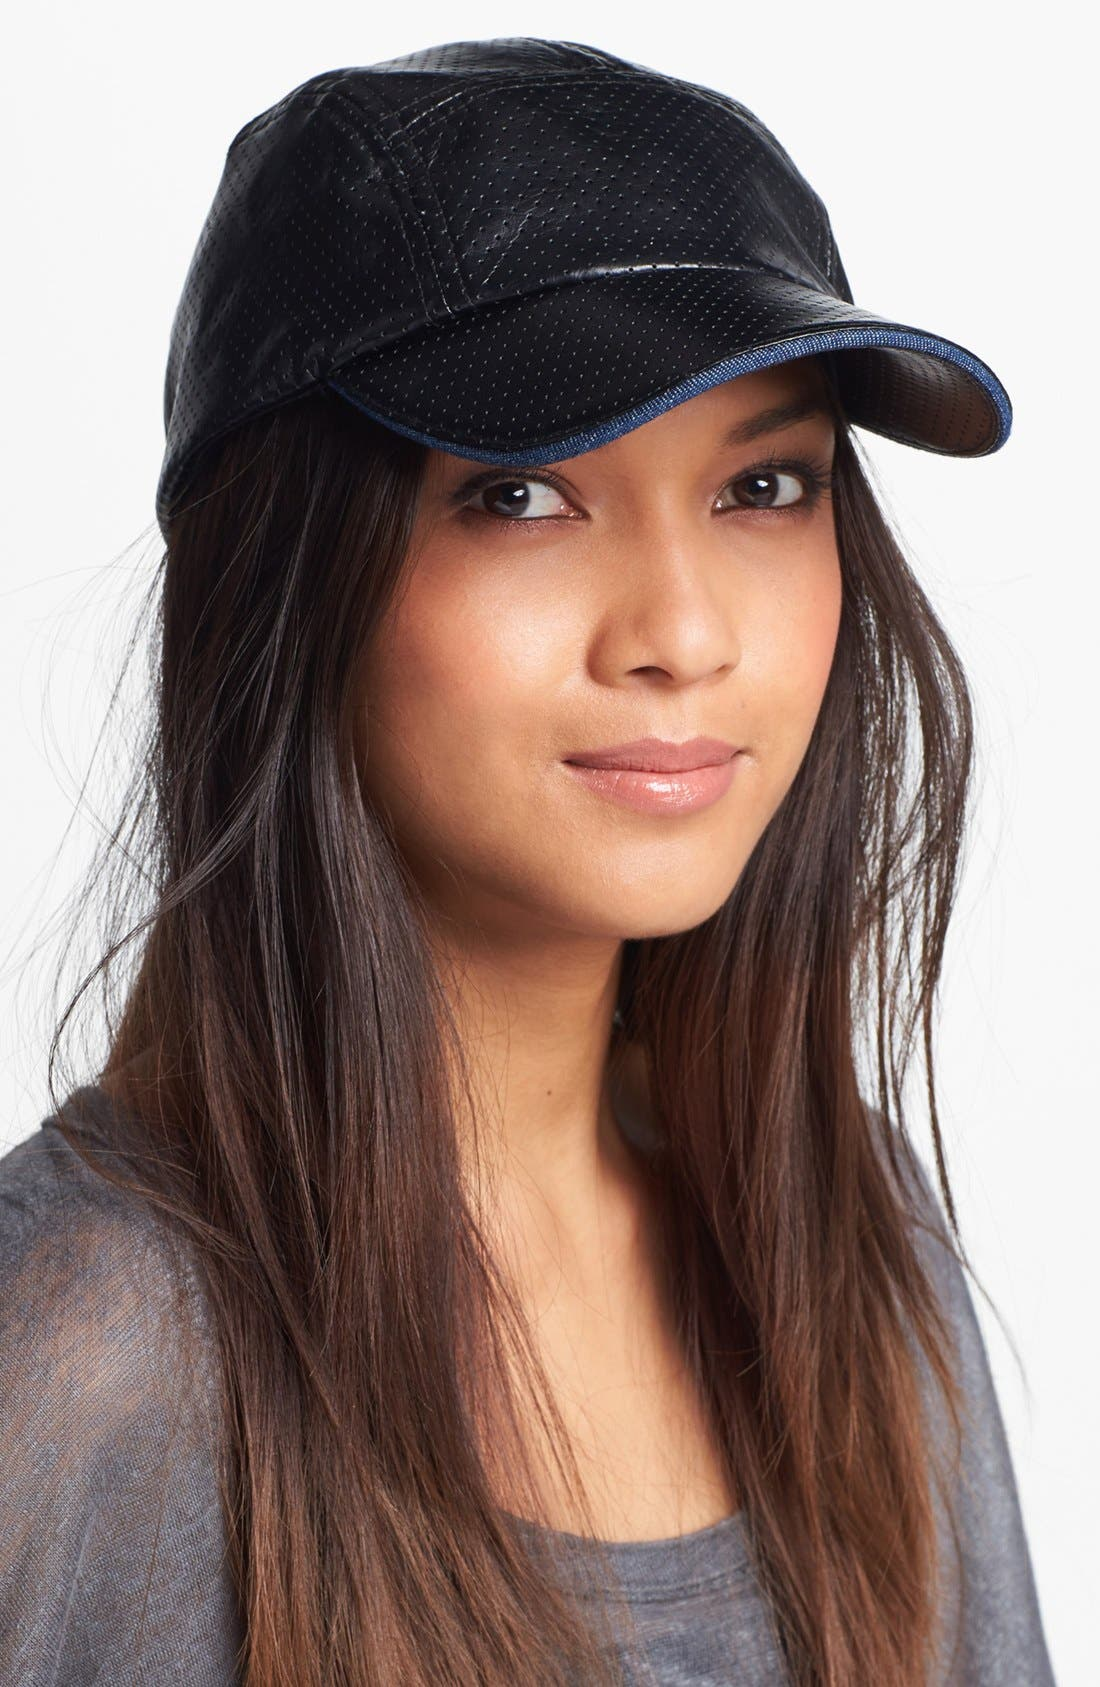 Alternate Image 1 Selected - BCBGeneration Perforated Faux Leather Cap